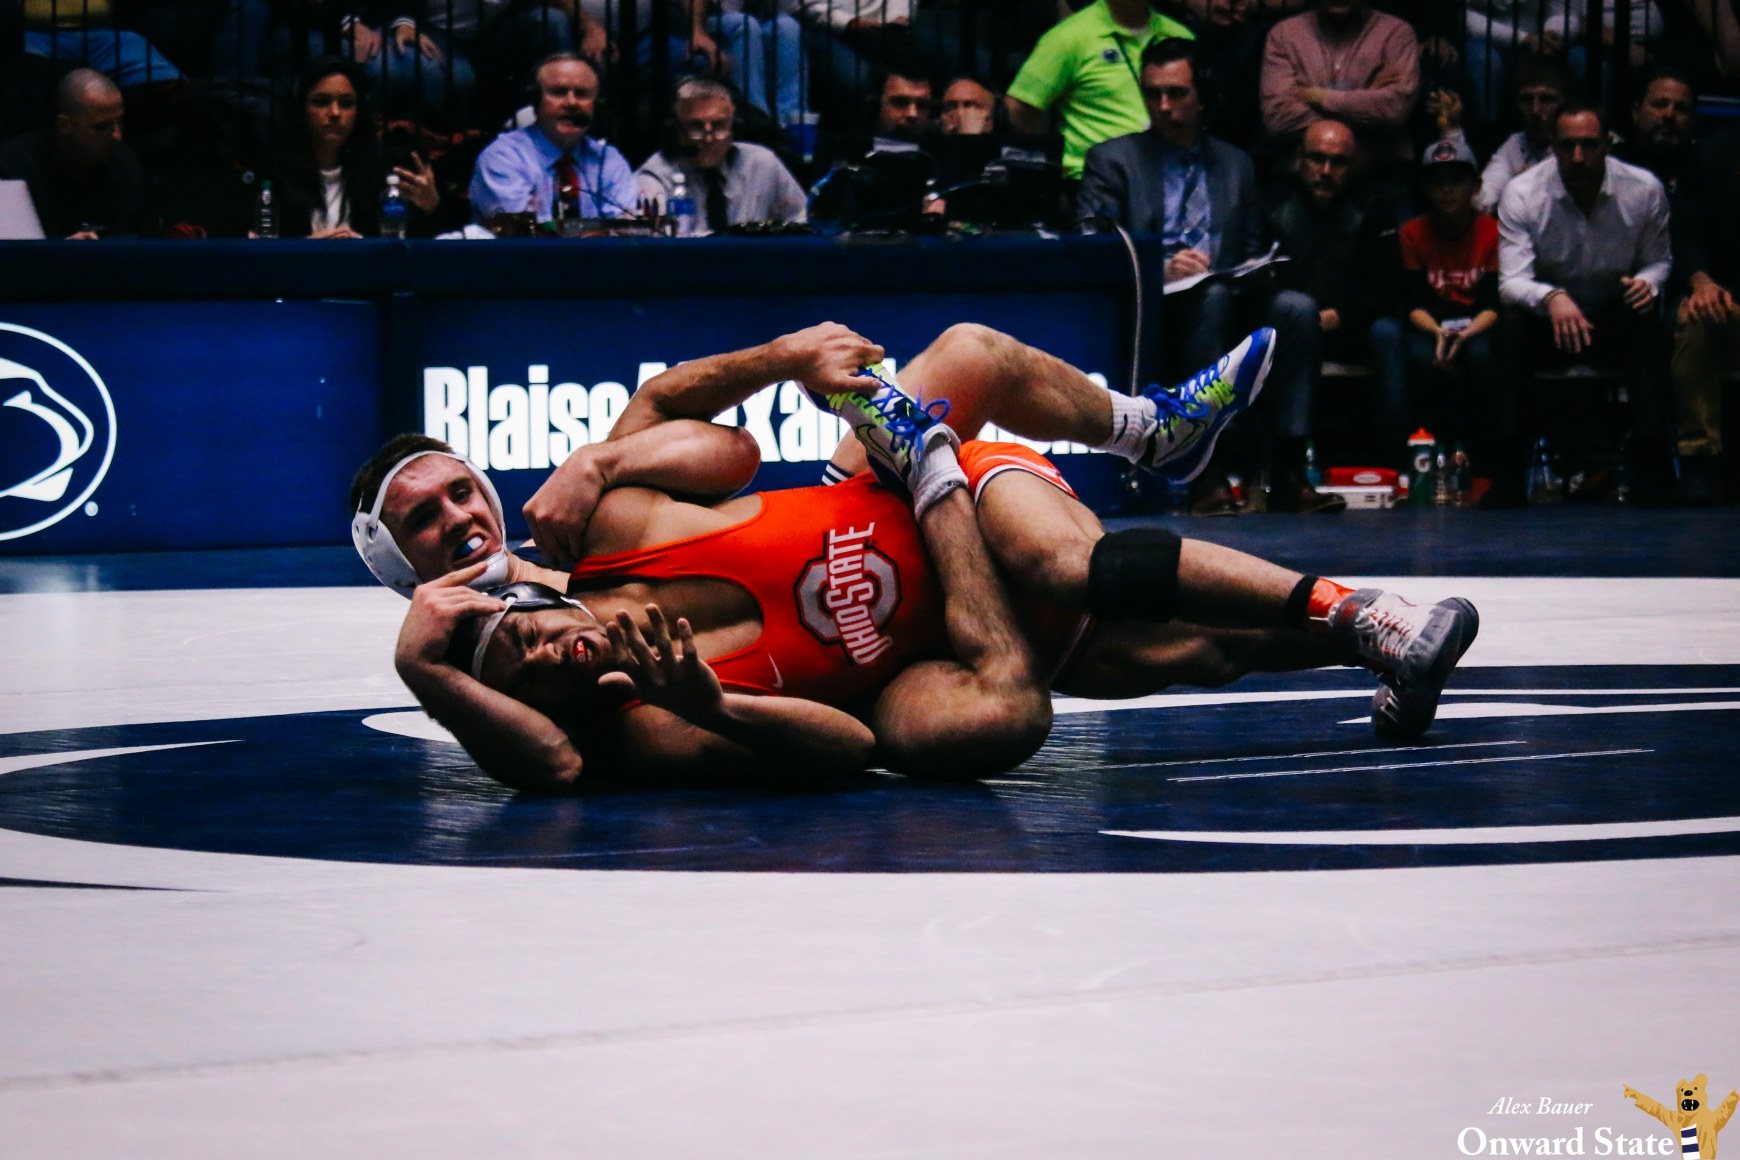 Penn State clinches 2018 NCAA wrestling team title with Bo Nickal's pin